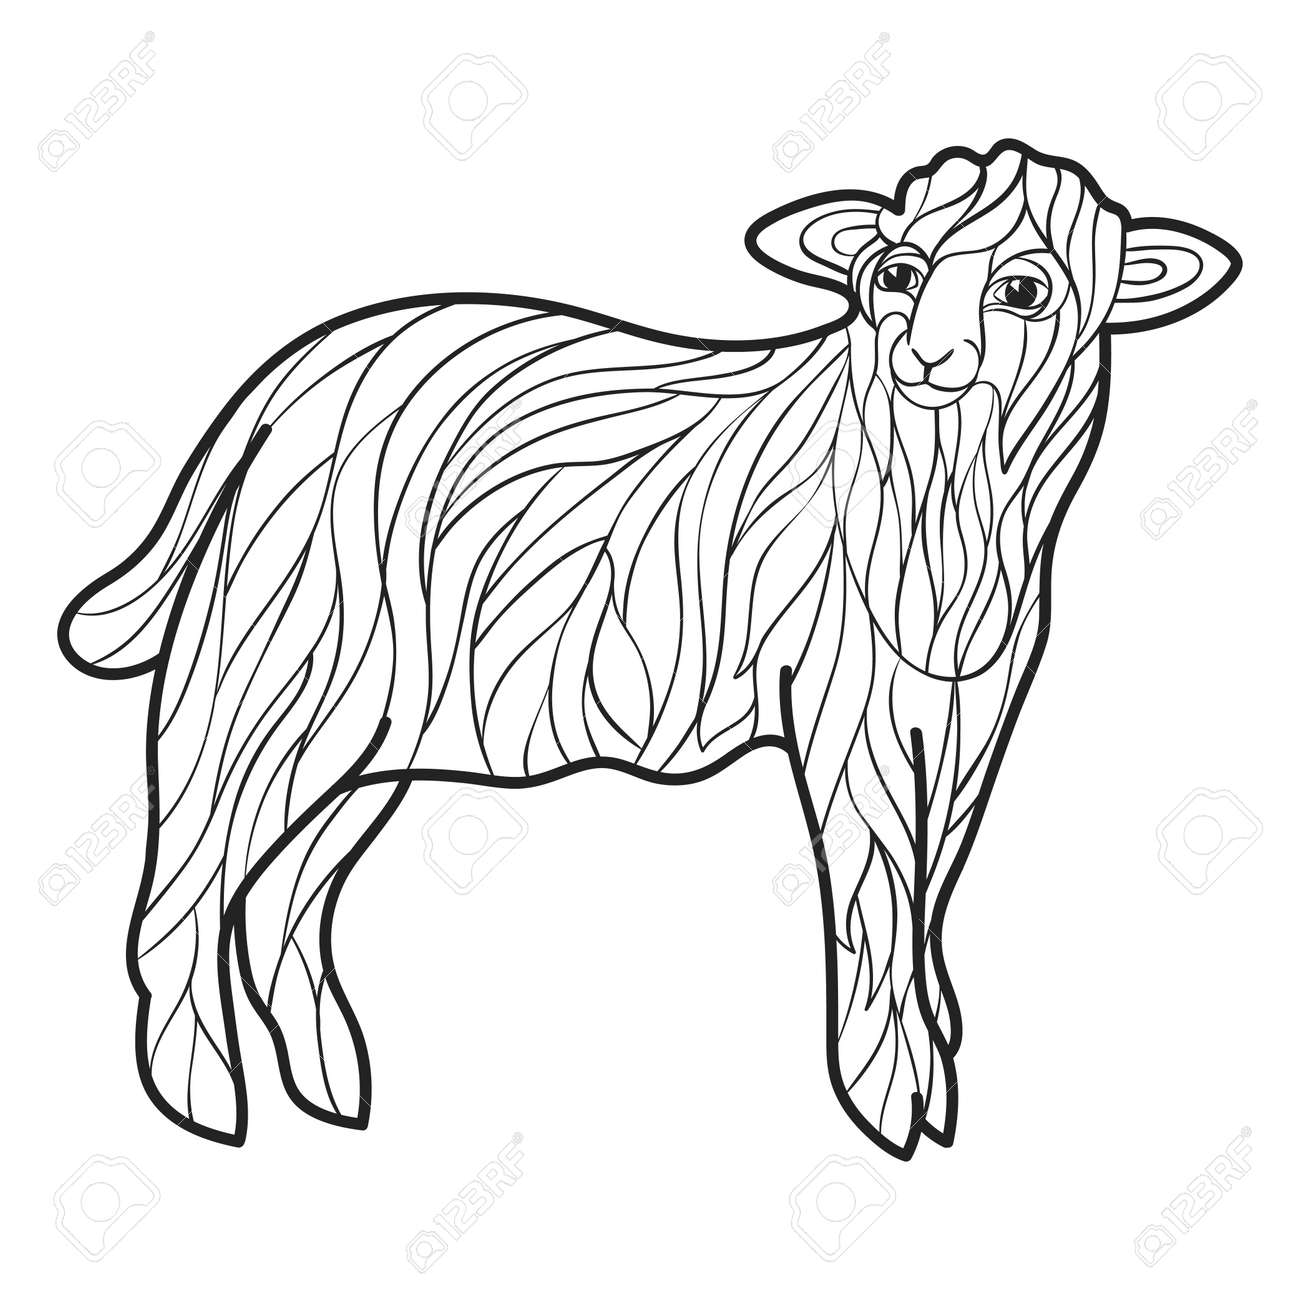 Vector Monochrome Hand Drawn Illustration Of Sheep. Coloring ...